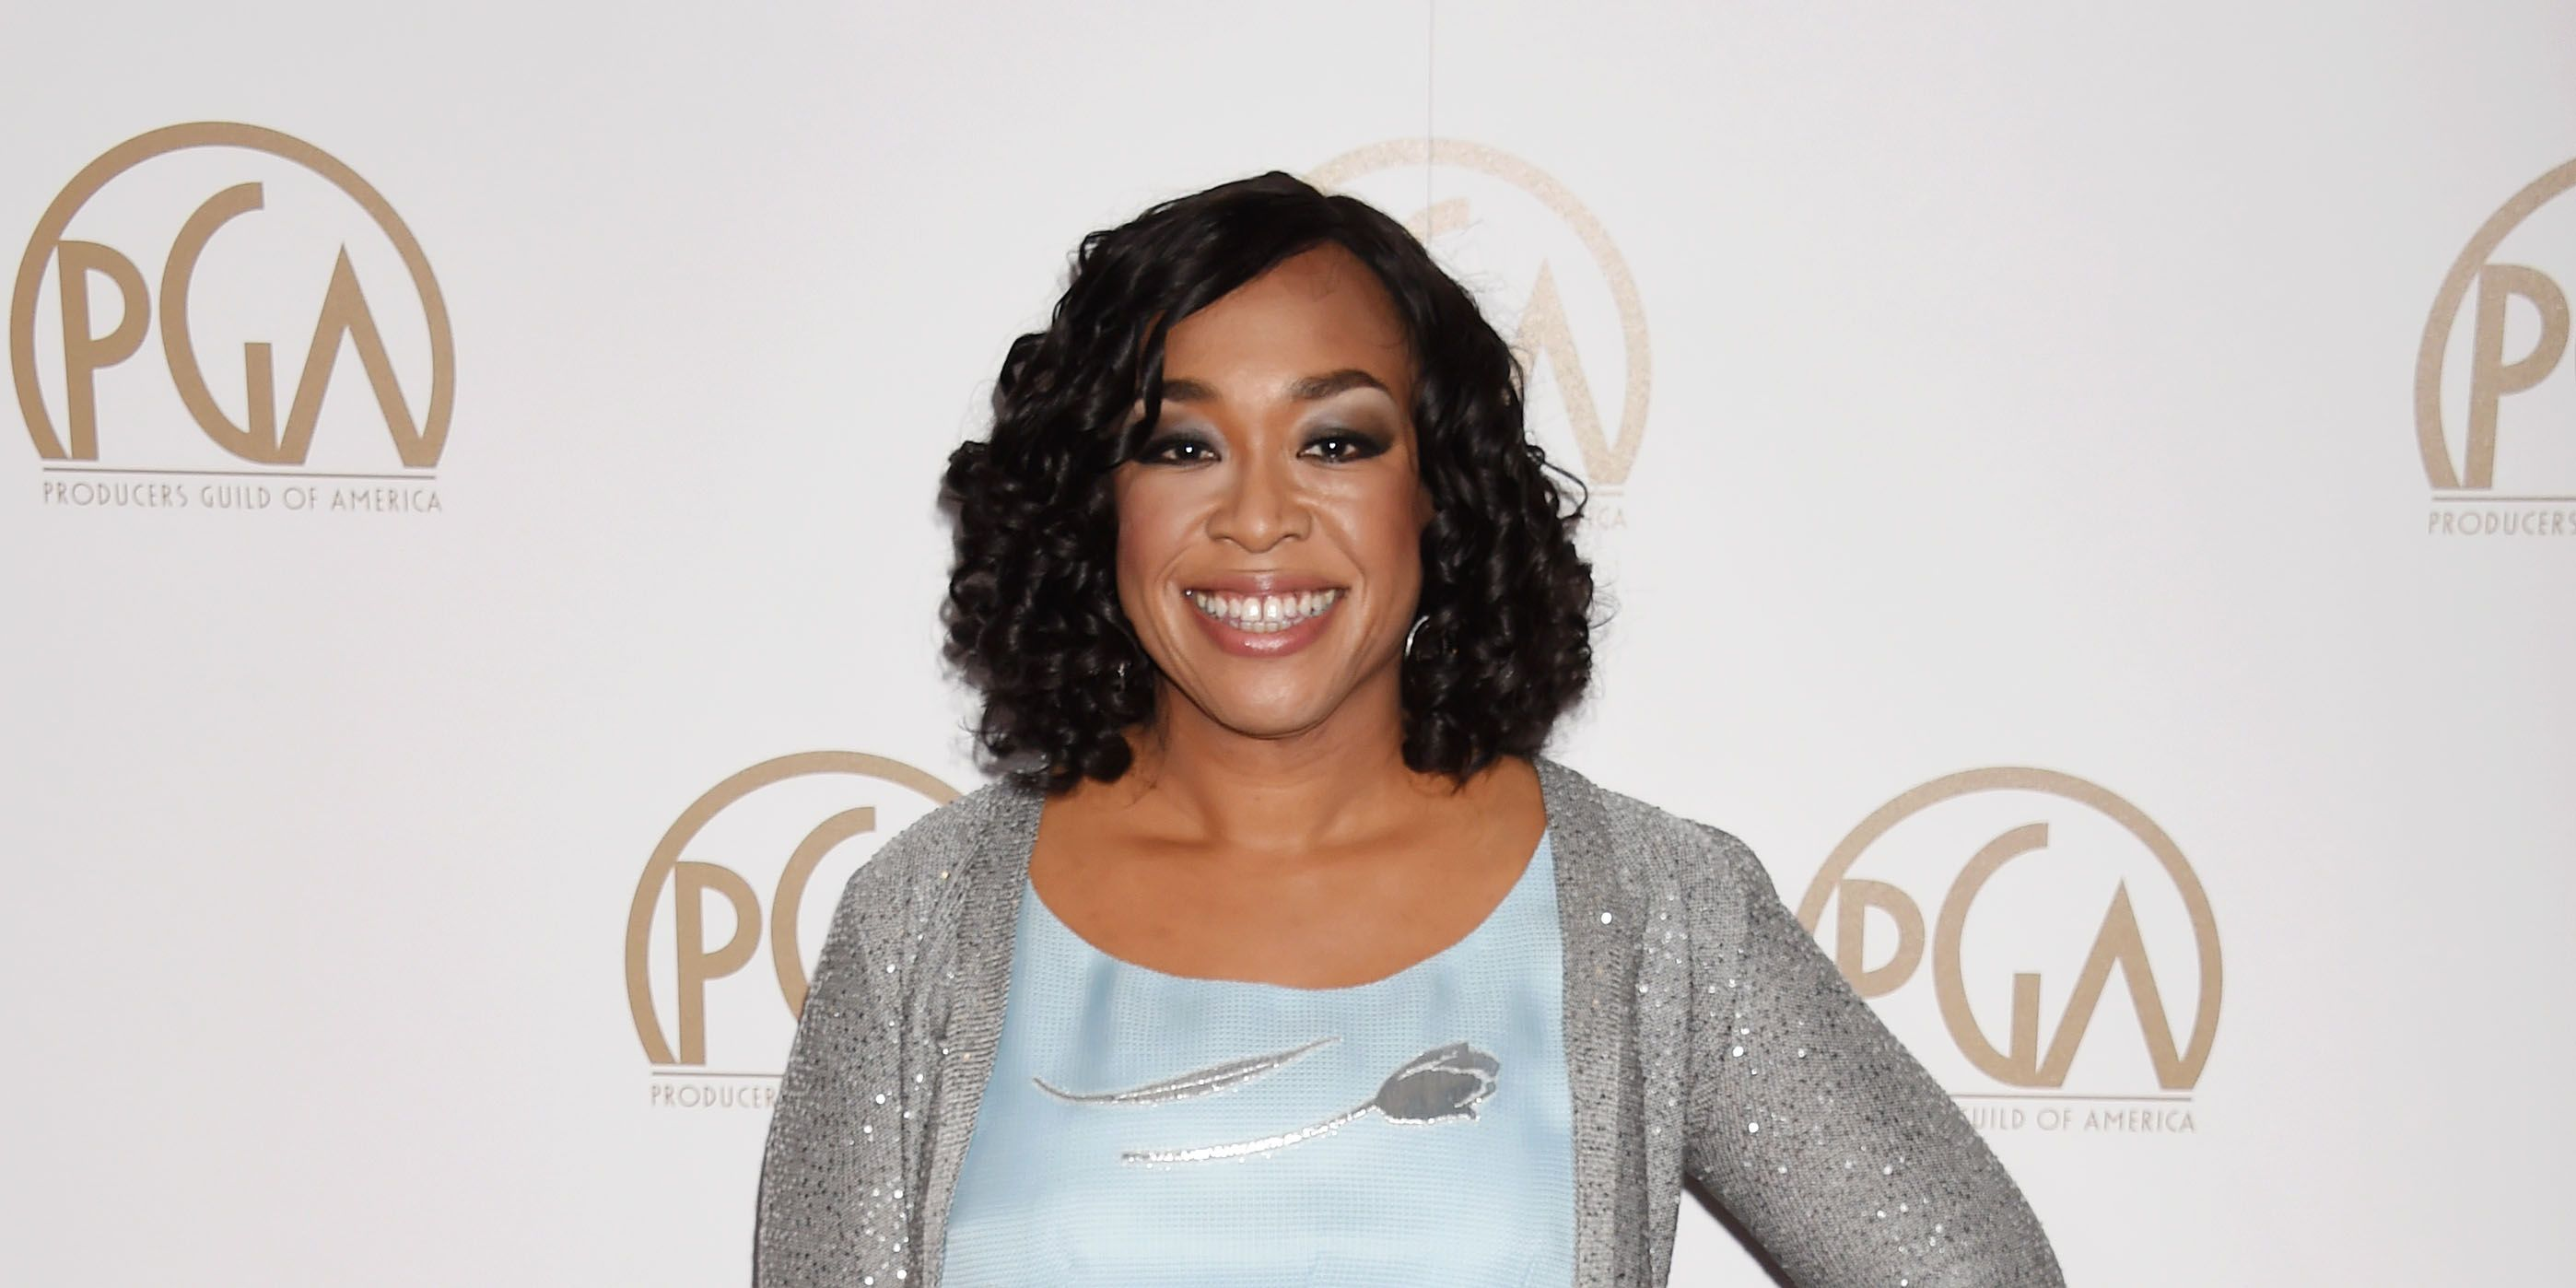 Shonda Rhimes arrives at the 27th Annual Producers Guild Awards